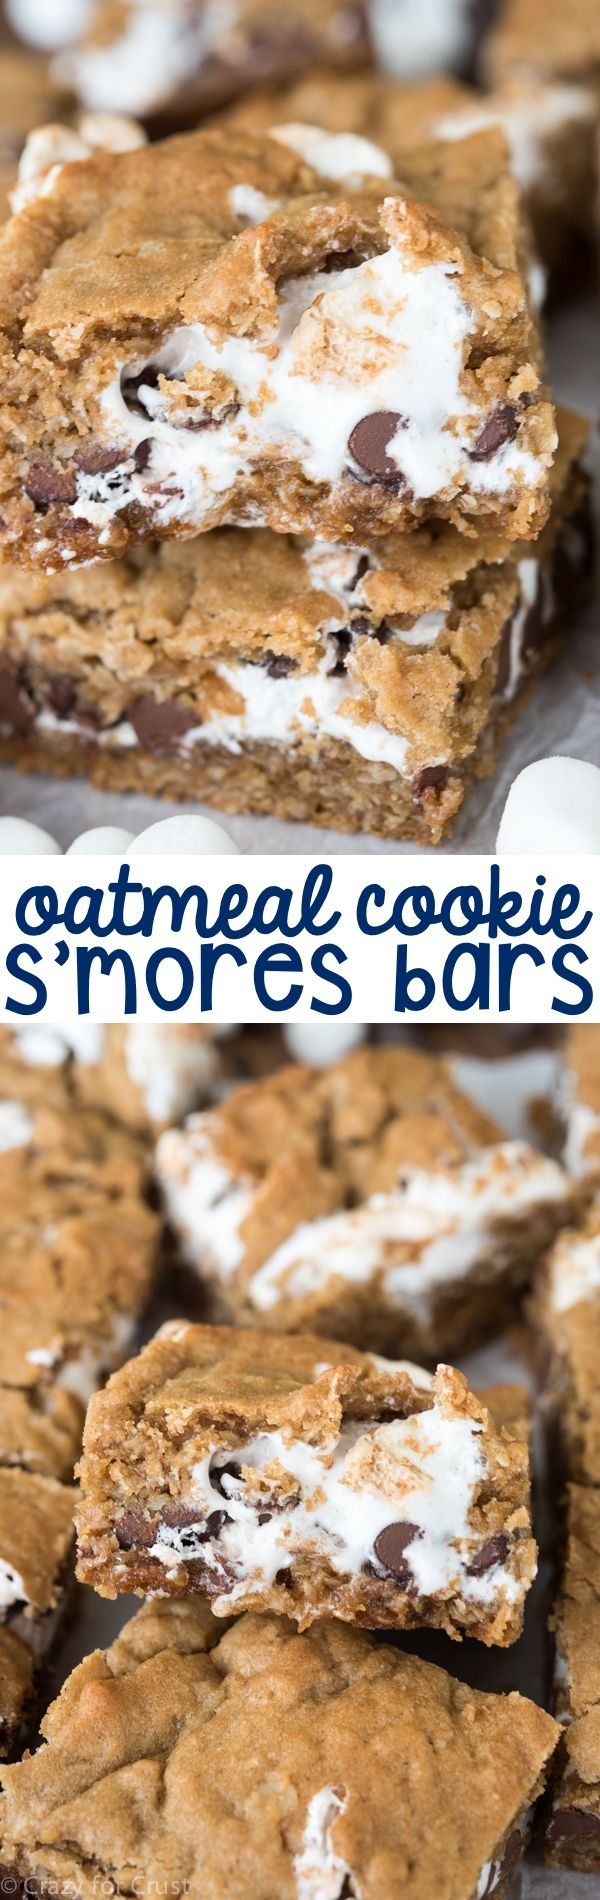 Ooey Gooey Oatmeal Cookie S'mores Bars - this recipe is the best s'mores recipe ever!